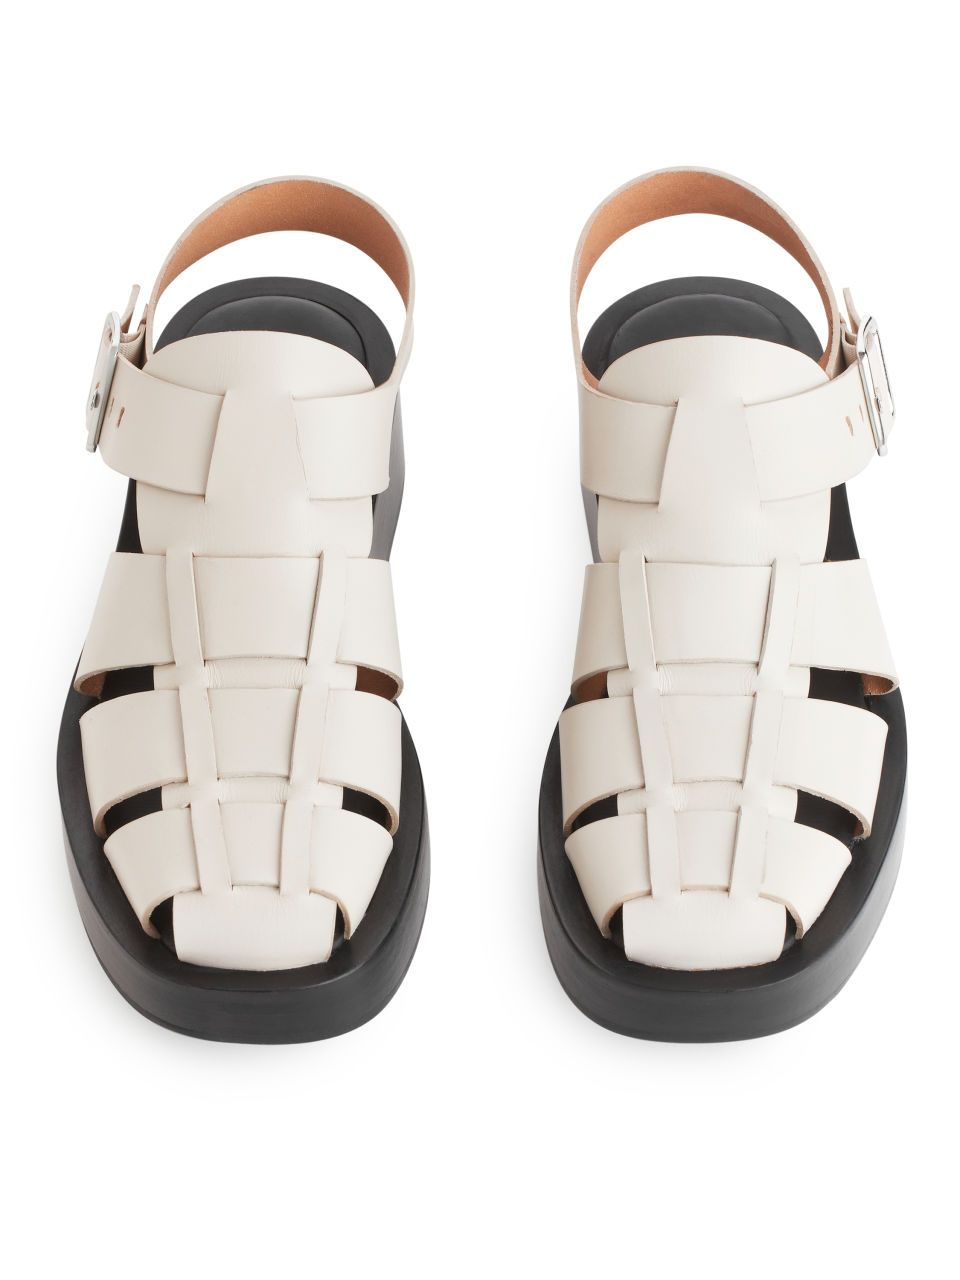 2021's Coolest High-Street Sandals Are Finally Back in Stock